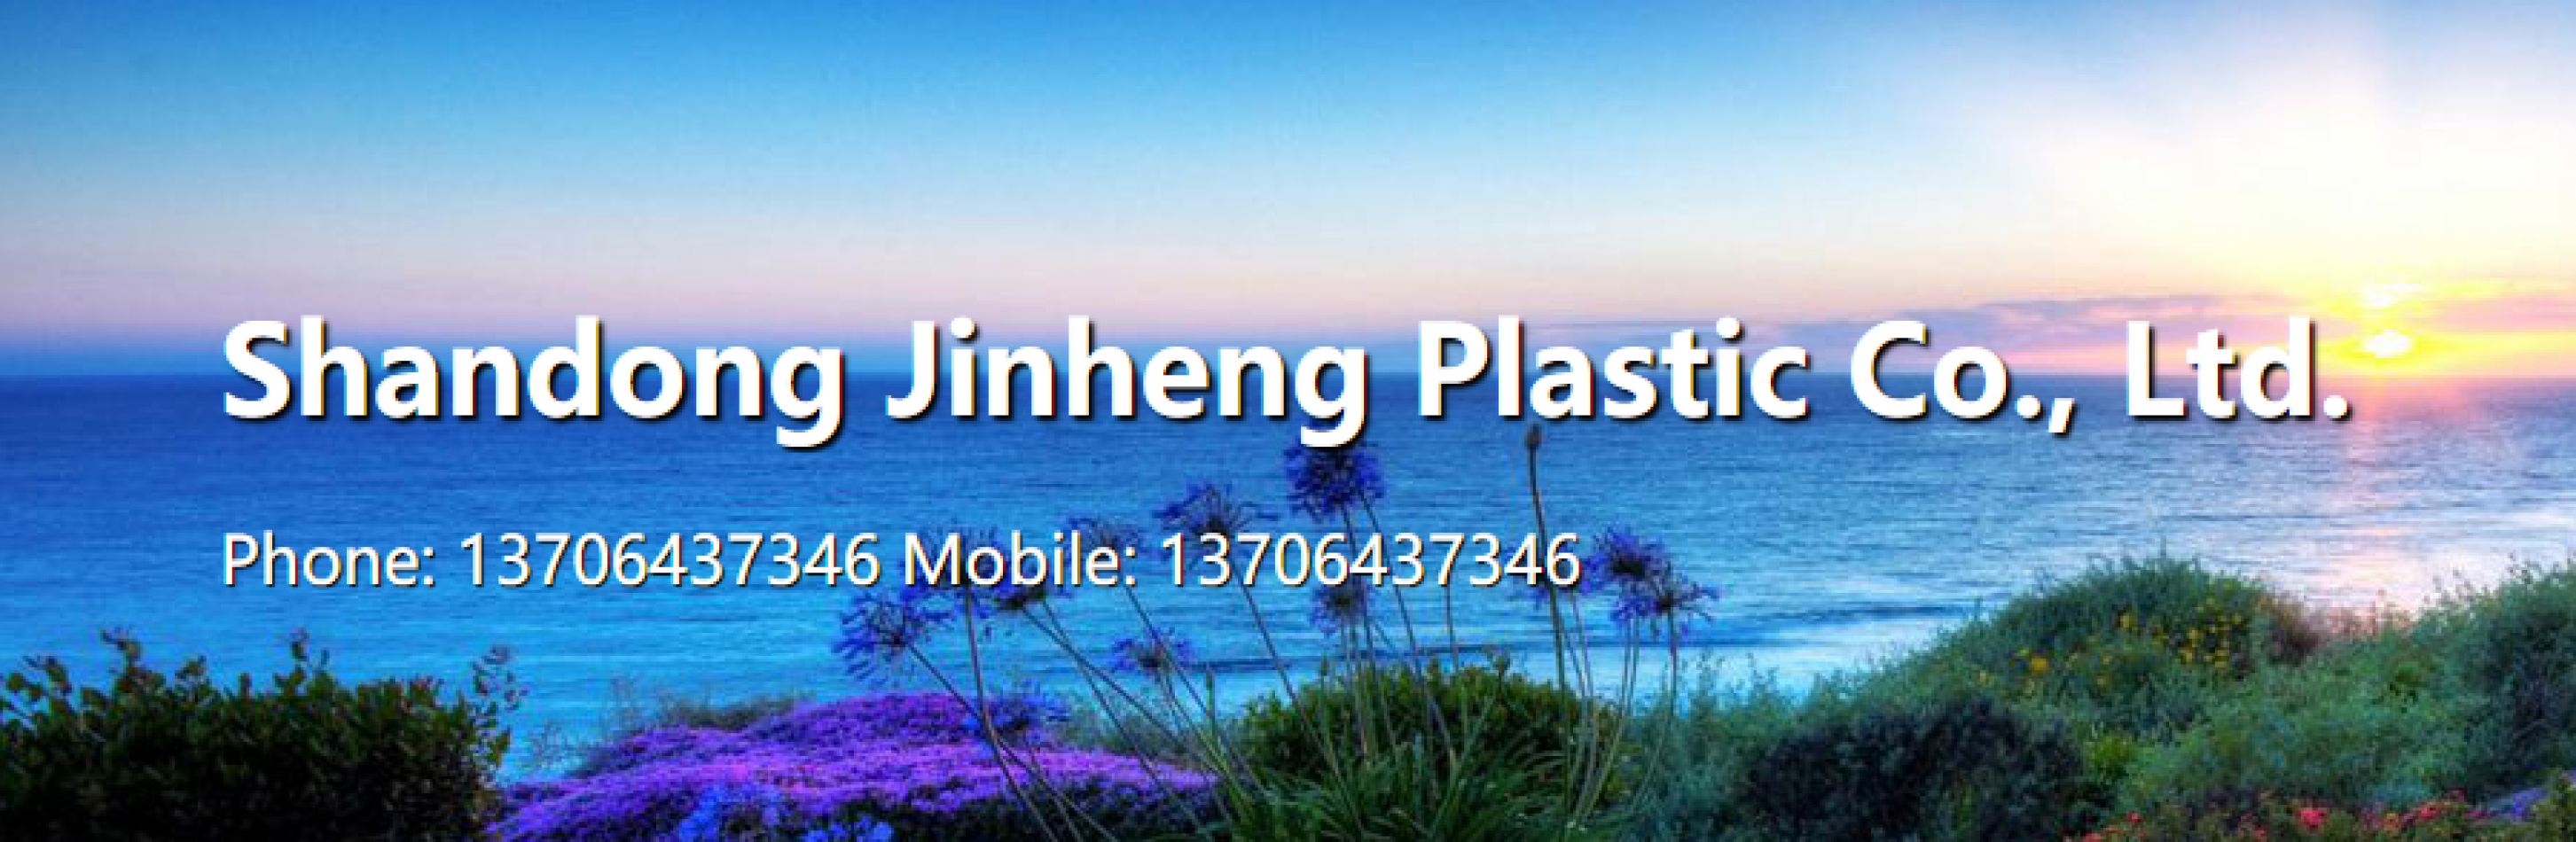 SHANDONG JINHENG PLASTICS CO. LTD